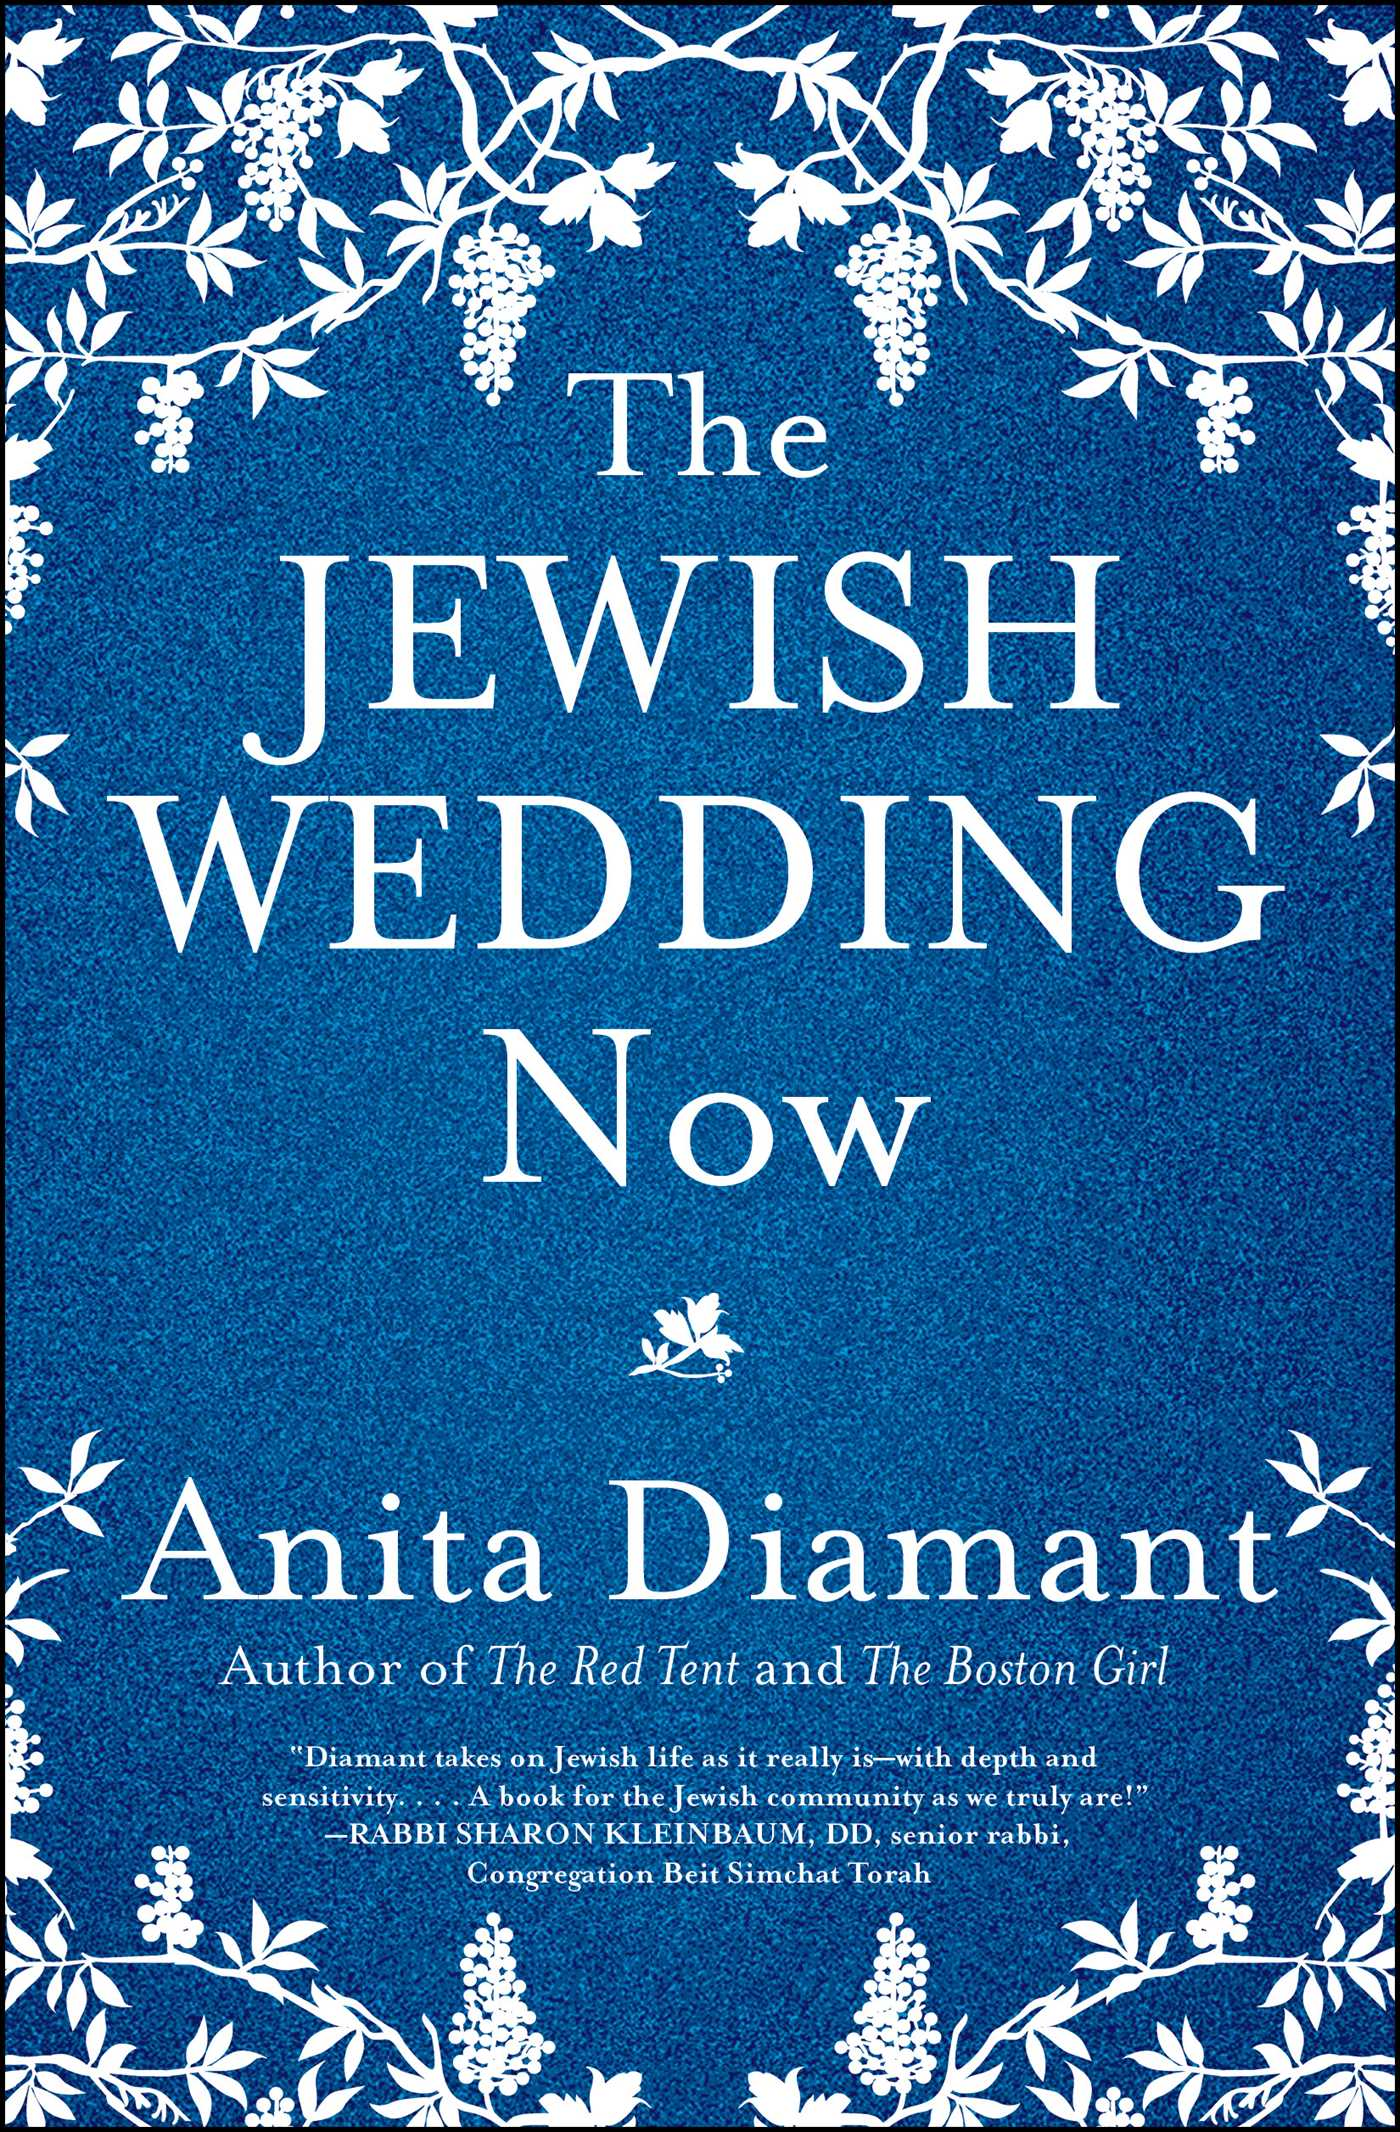 The jewish wedding now 9781501153945 hr